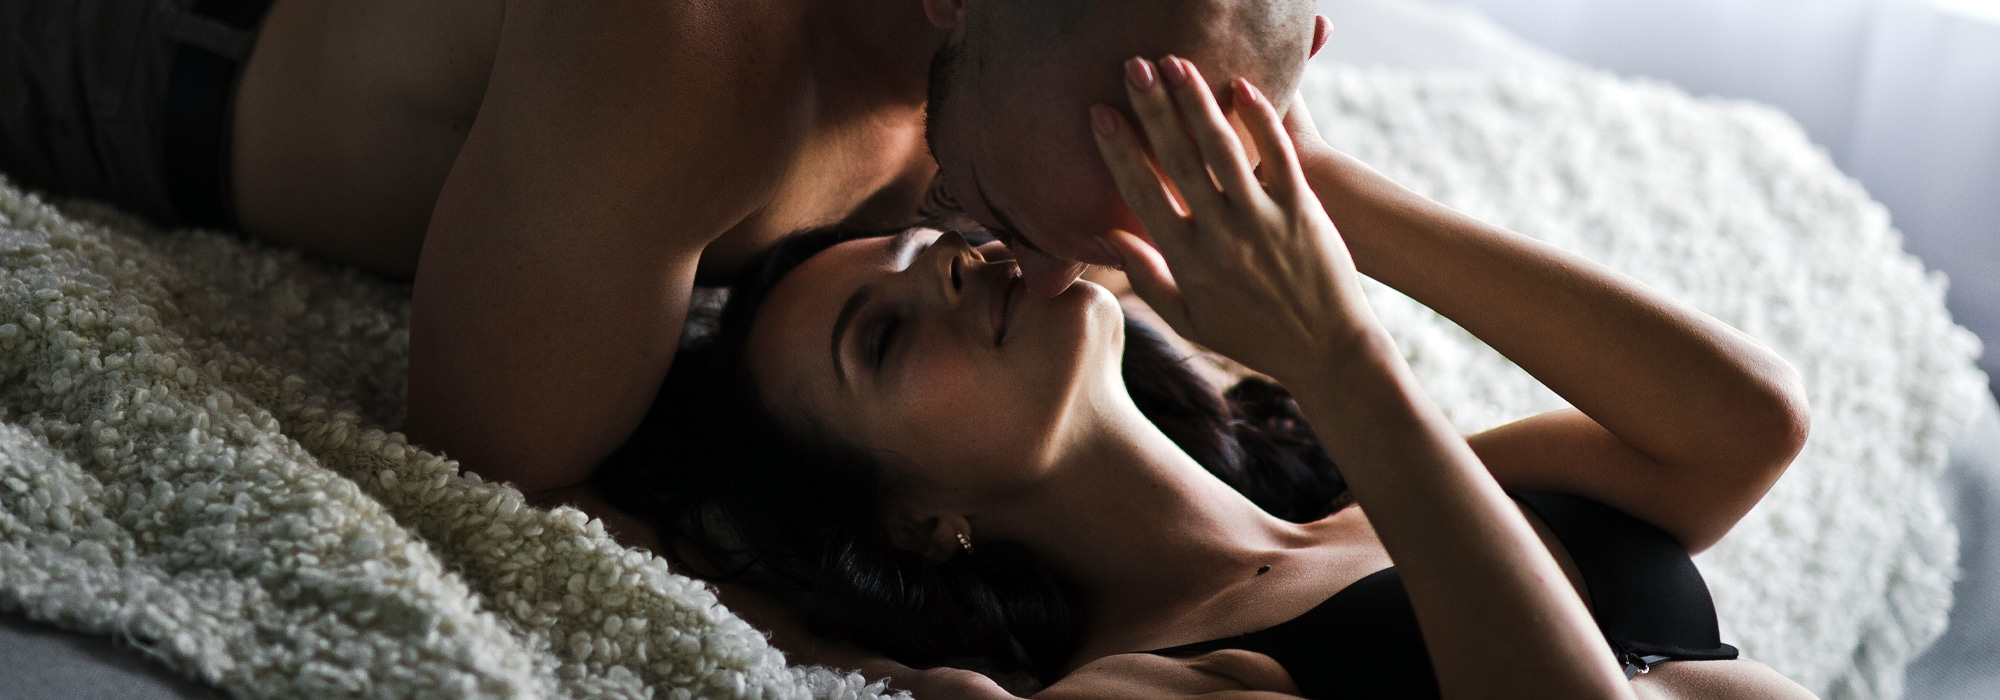 9 Ways You Can Spice Up Your Sex Life and Increase Your Libido 2